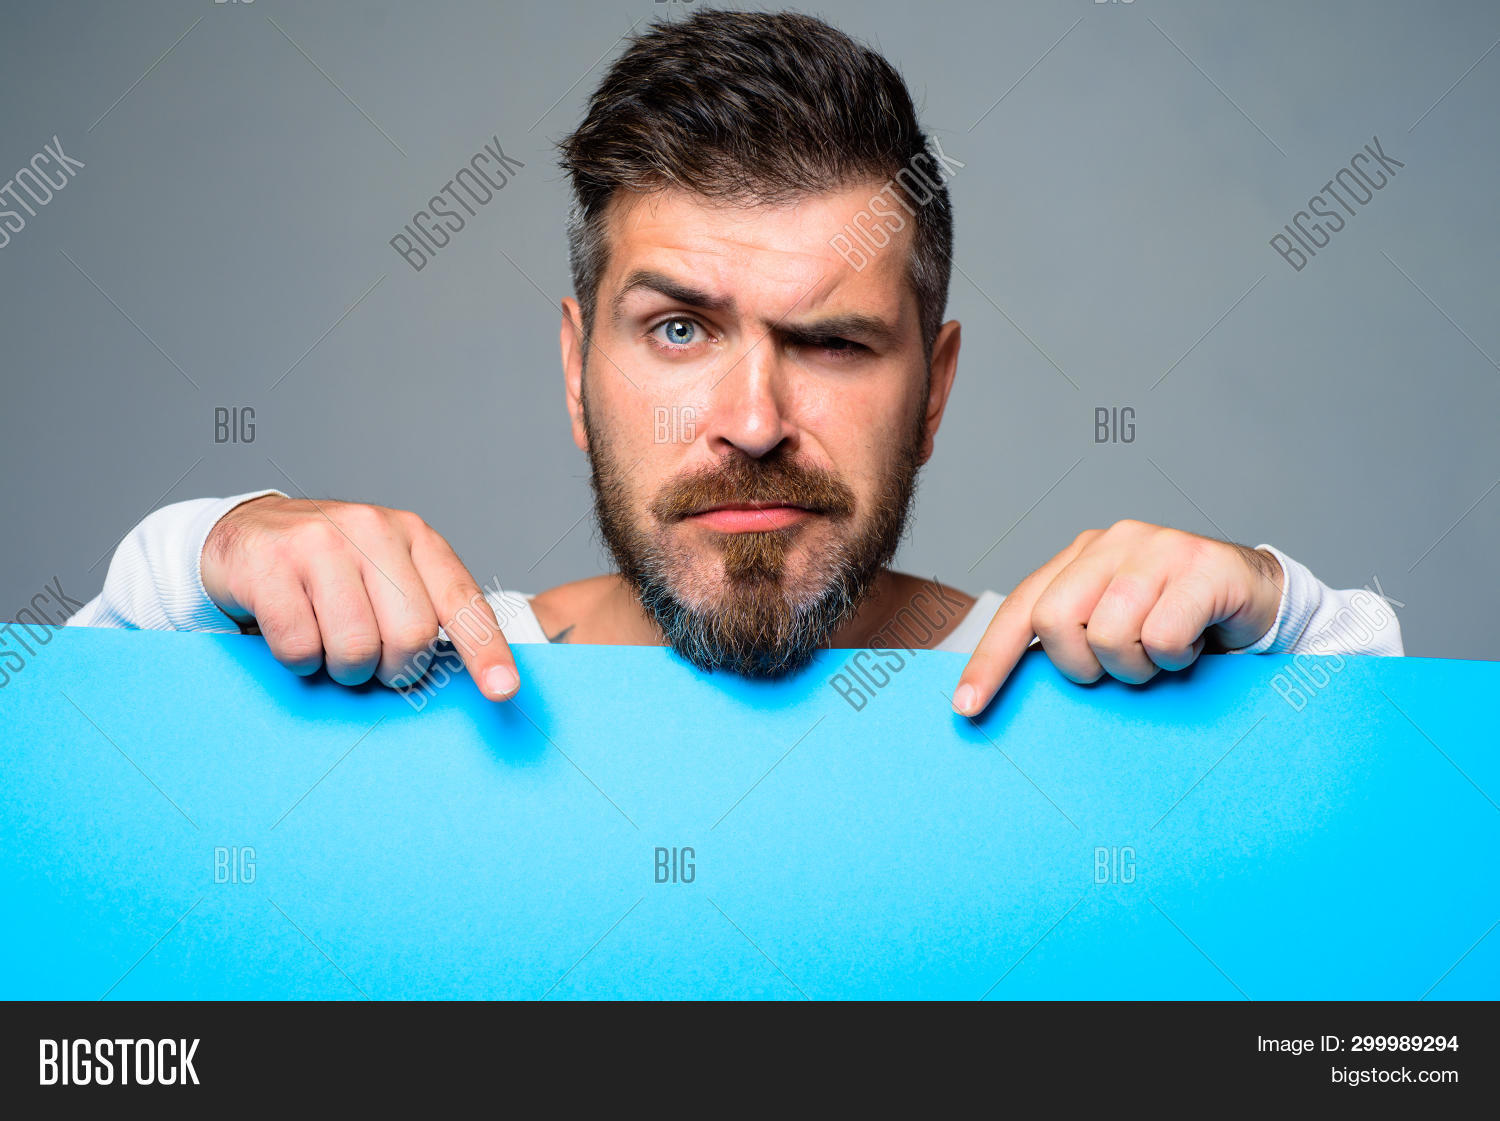 add,ads,adult,advertisement,advertising,background,banner,billboard,black,blank,blog,board,brand,business,close,close-up,closeup,copy,copy-space,copyspace,digital,discount,display,empty,friday,handsome,happy,hiding,holding,isolated,logo,looking,man,marketing,media,online,placard,poster,purchase,sale,shopping,sign,signboard,space,stand,text,up,value,white